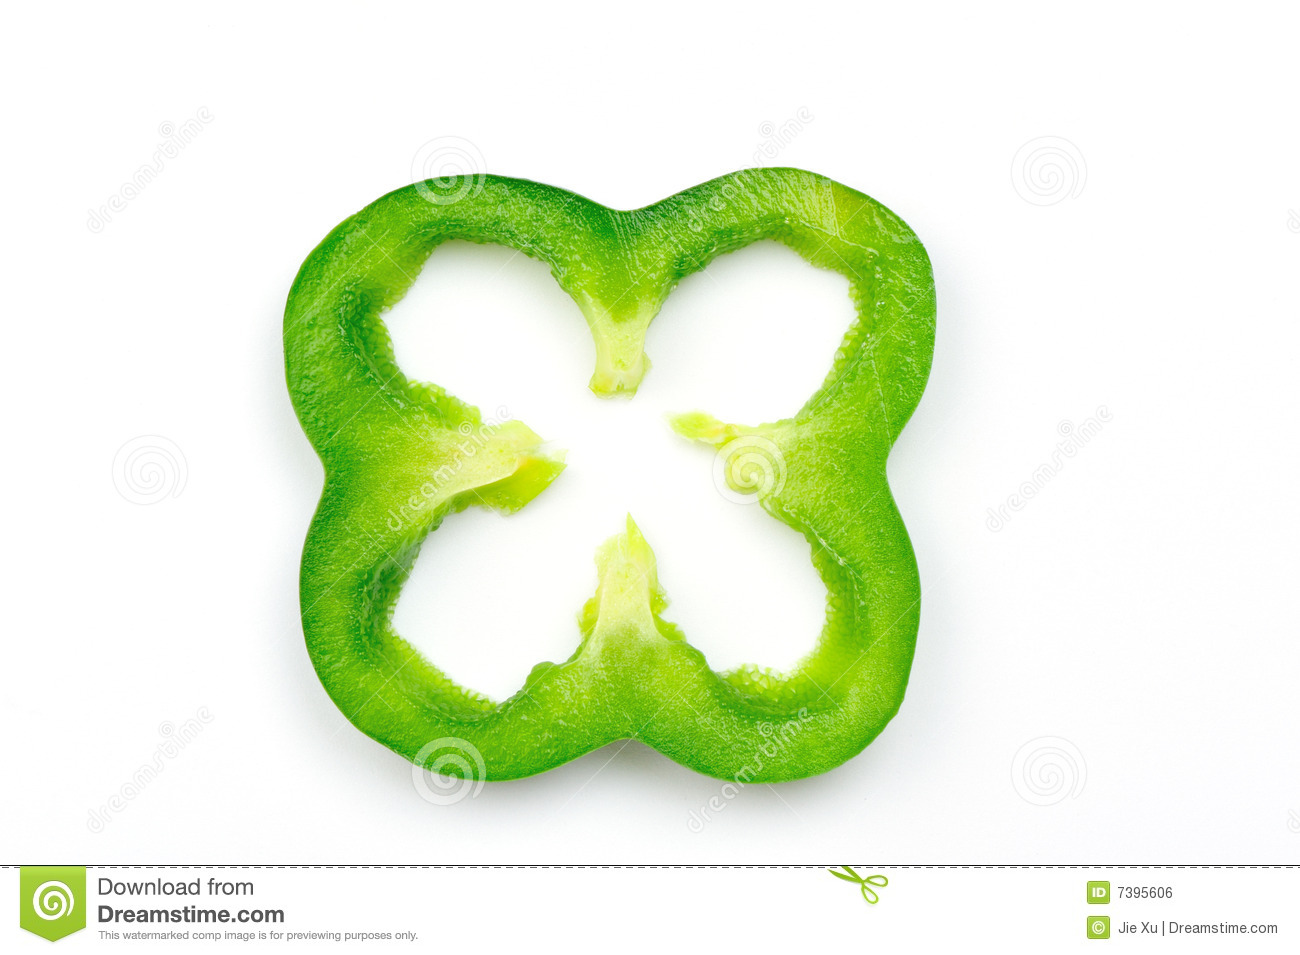 Green pepper slice clip art